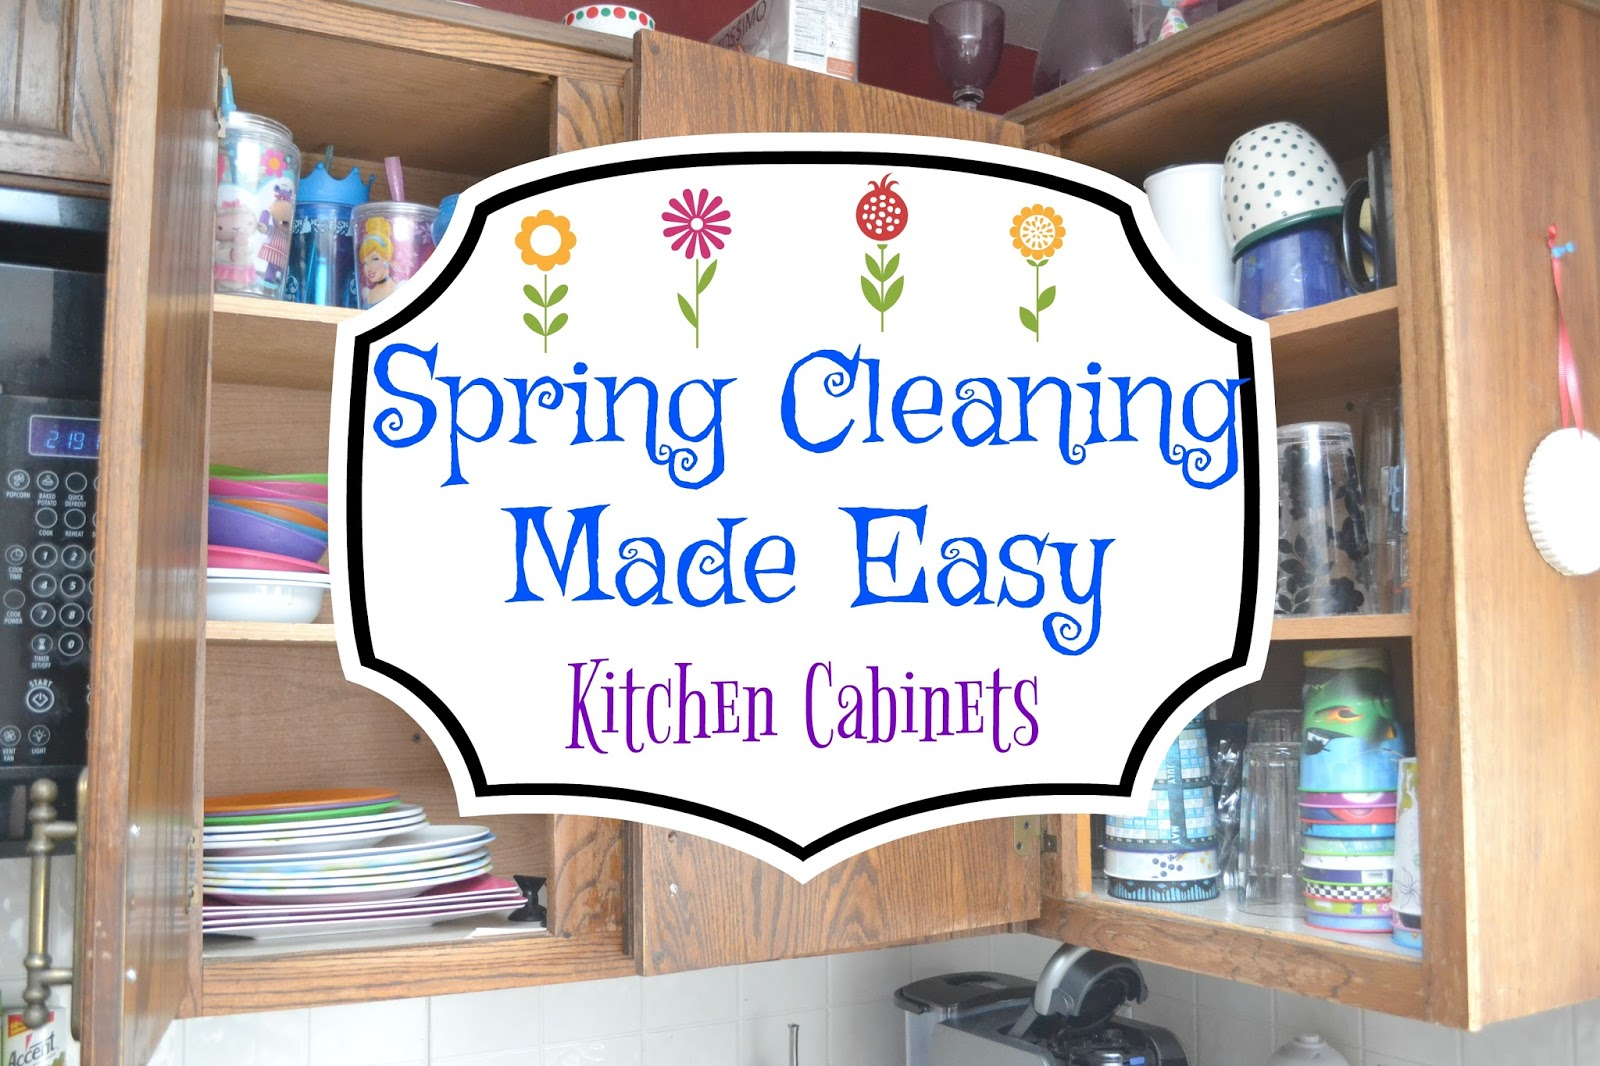 kitchen cabinets spring cleaning cleaning kitchen cabinets Kitchen Cabinets Spring Cleaning Made Easy spring cleaning tips easy spring cleaning